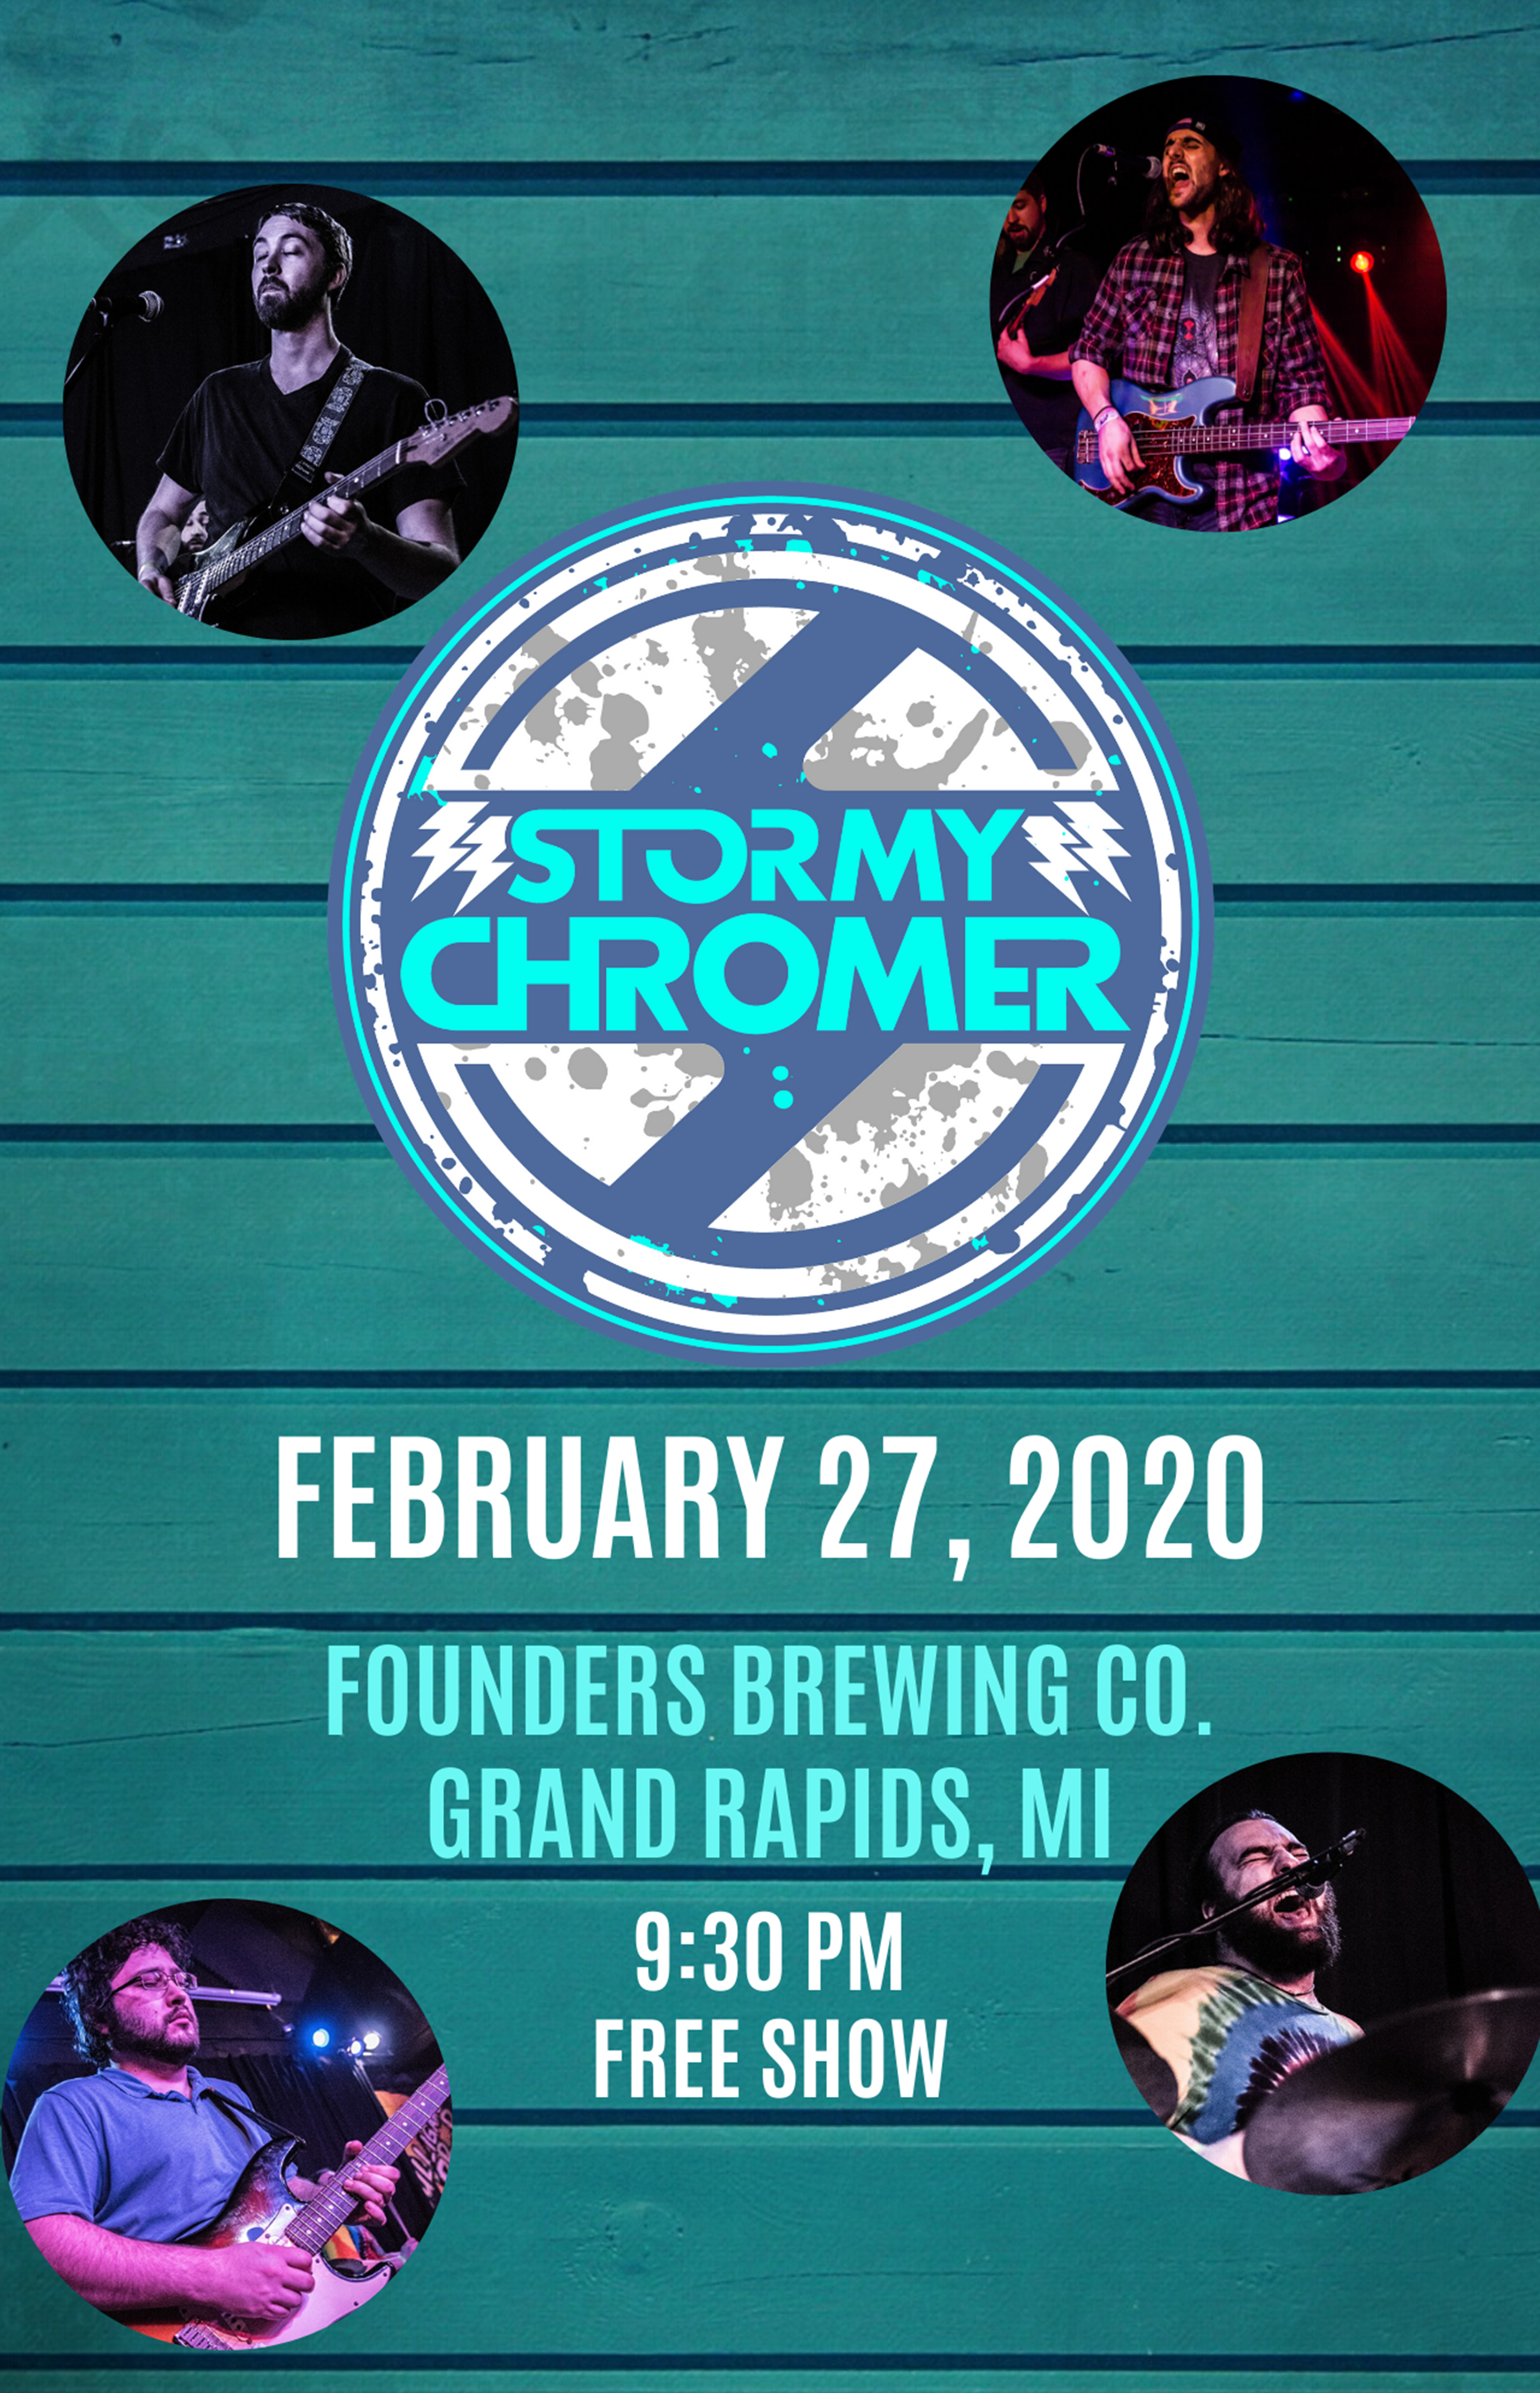 Stormy Chromer event poster hosted by Founder's Brewing Co.